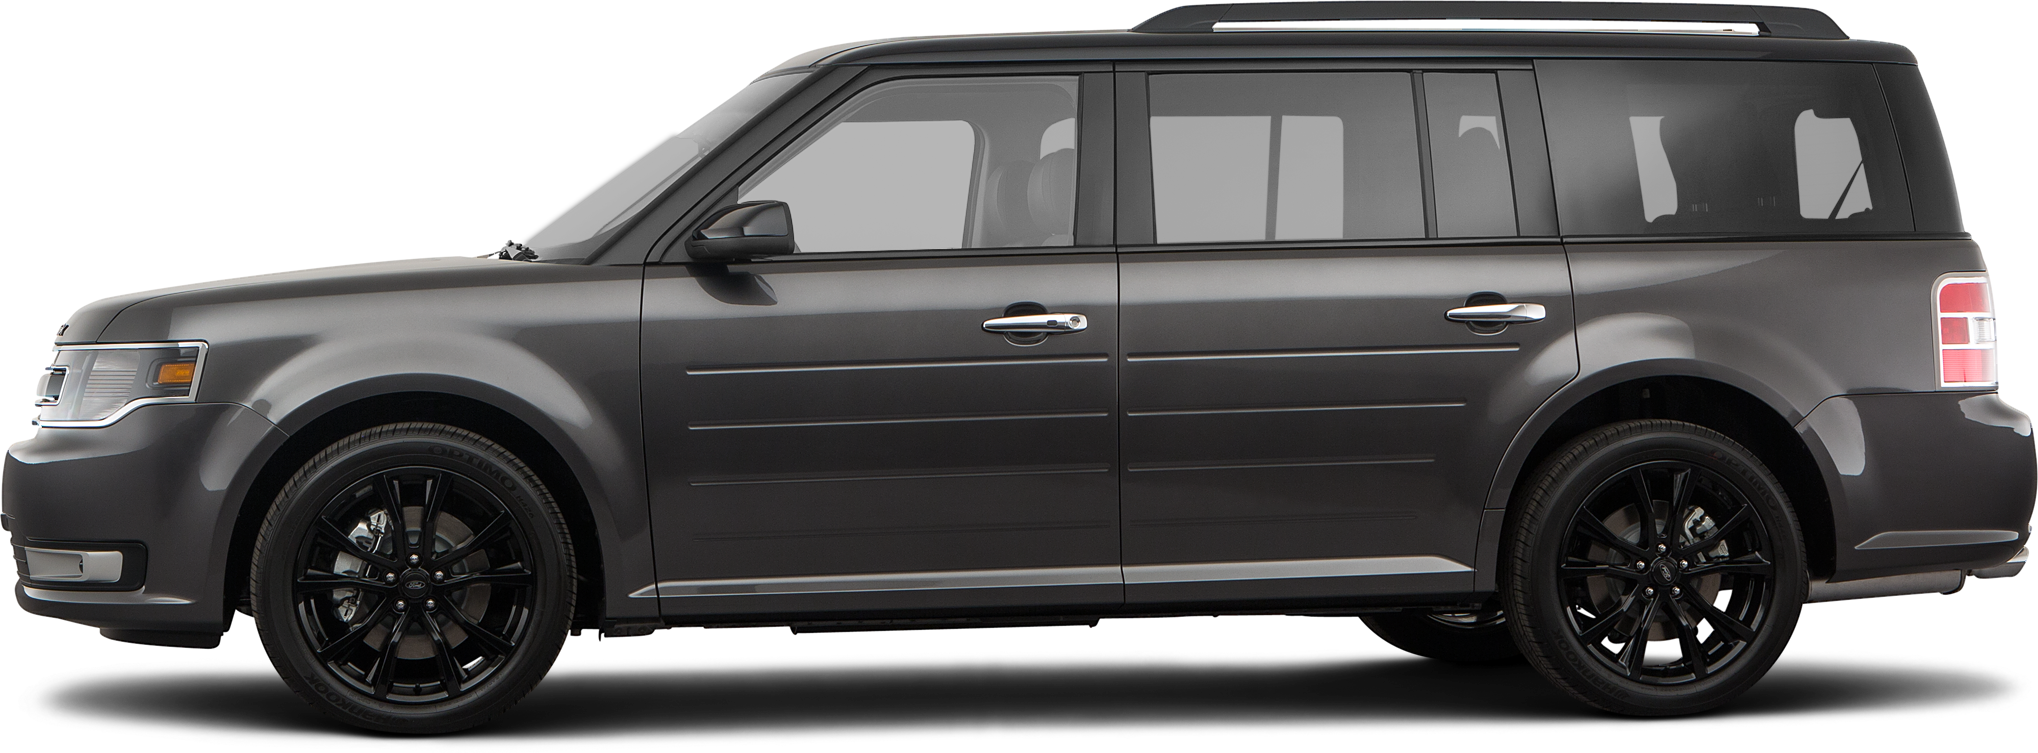 2019 Ford Flex SUV SEL